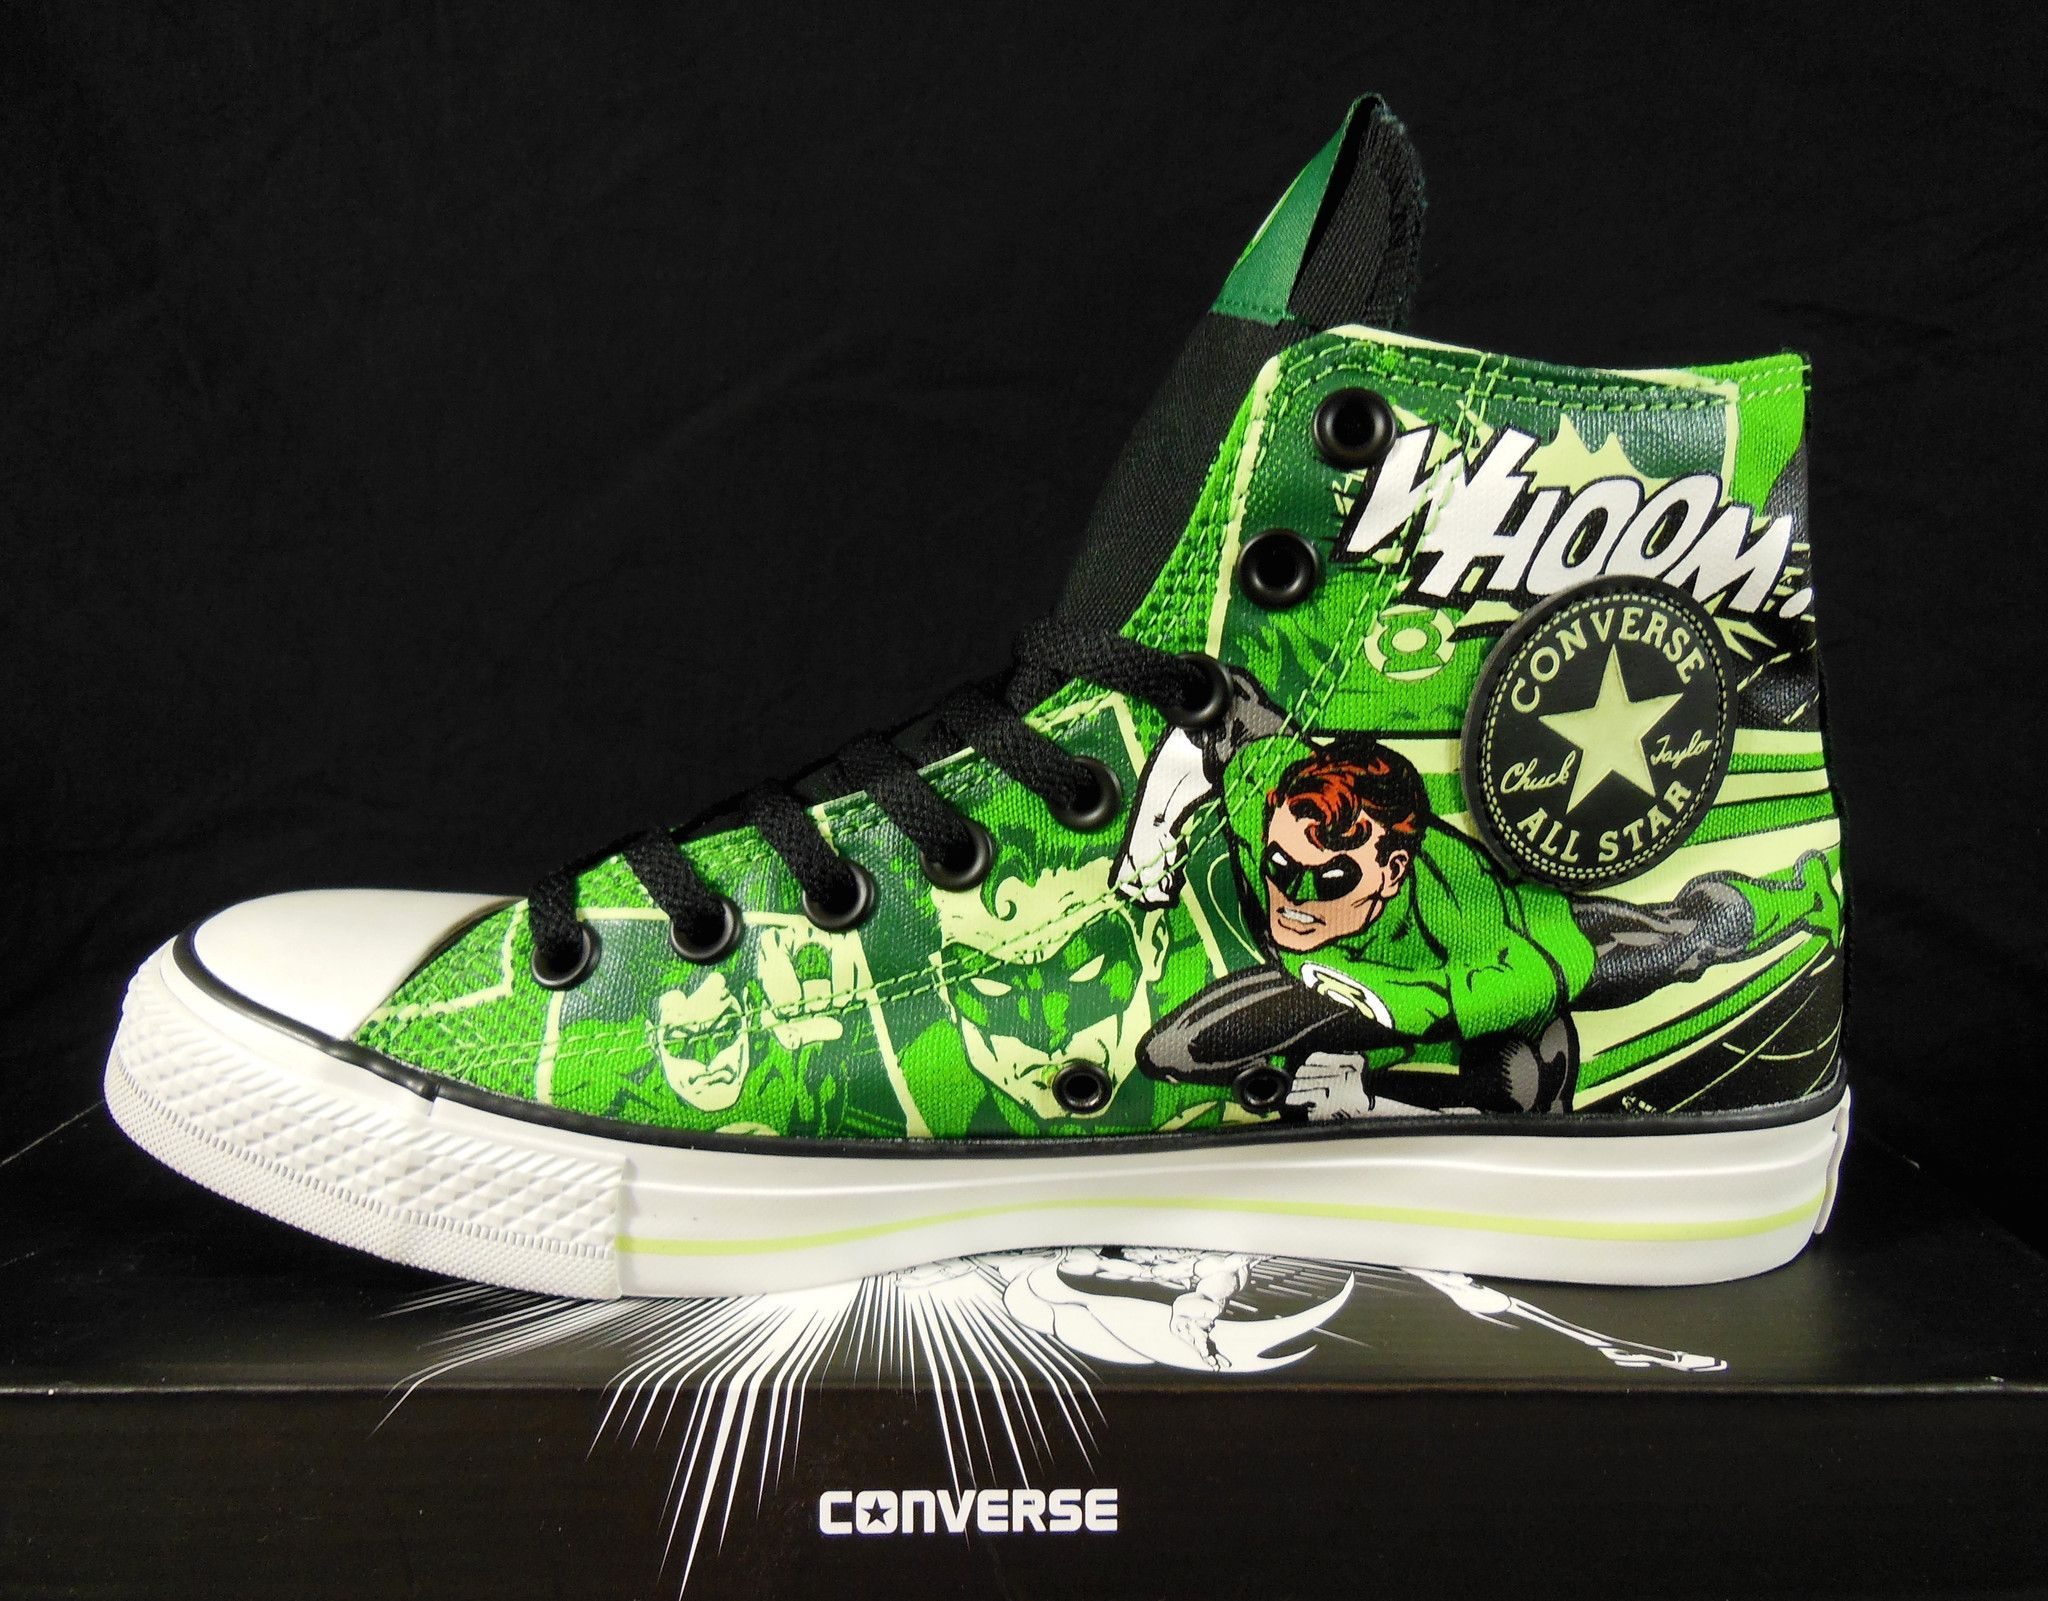 558b77dd75cd Converse Green Lantern All Star Chuck Taylor Kicks   Sneakers ...